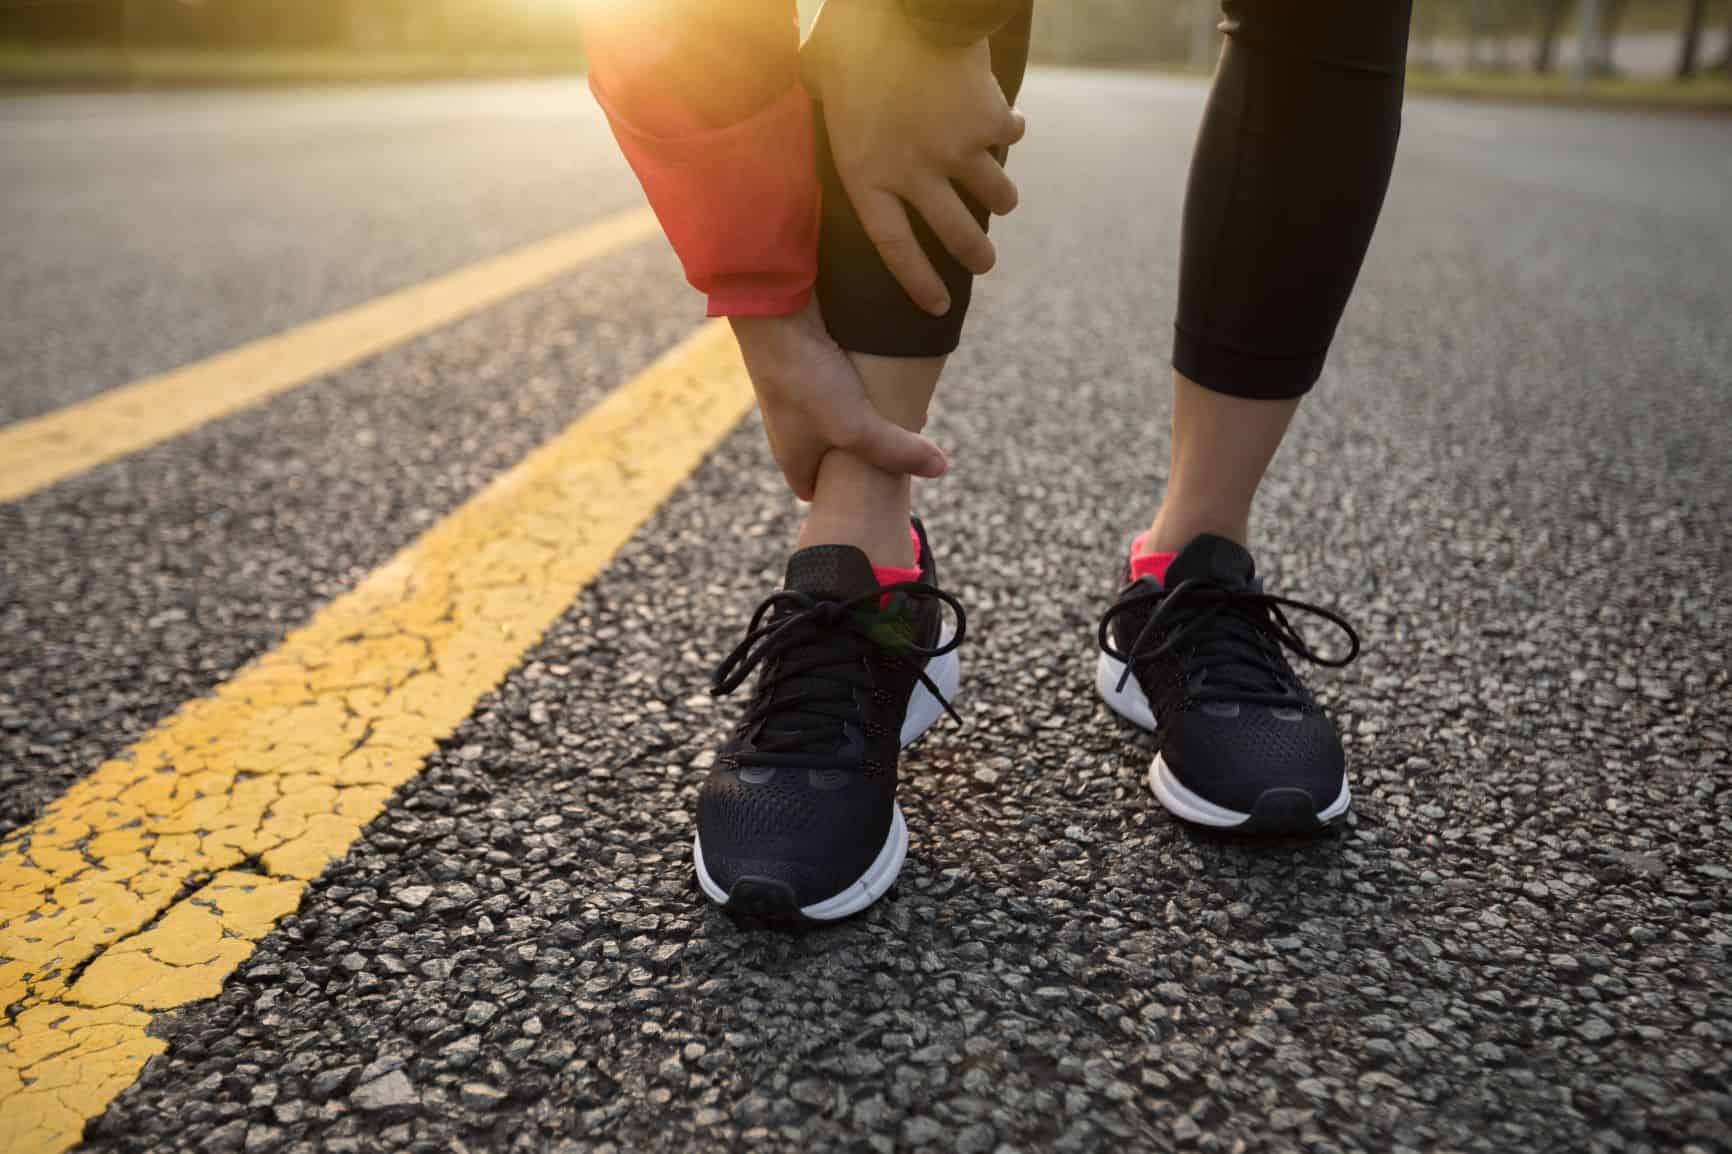 How Can I Prevent Overuse Injuries?